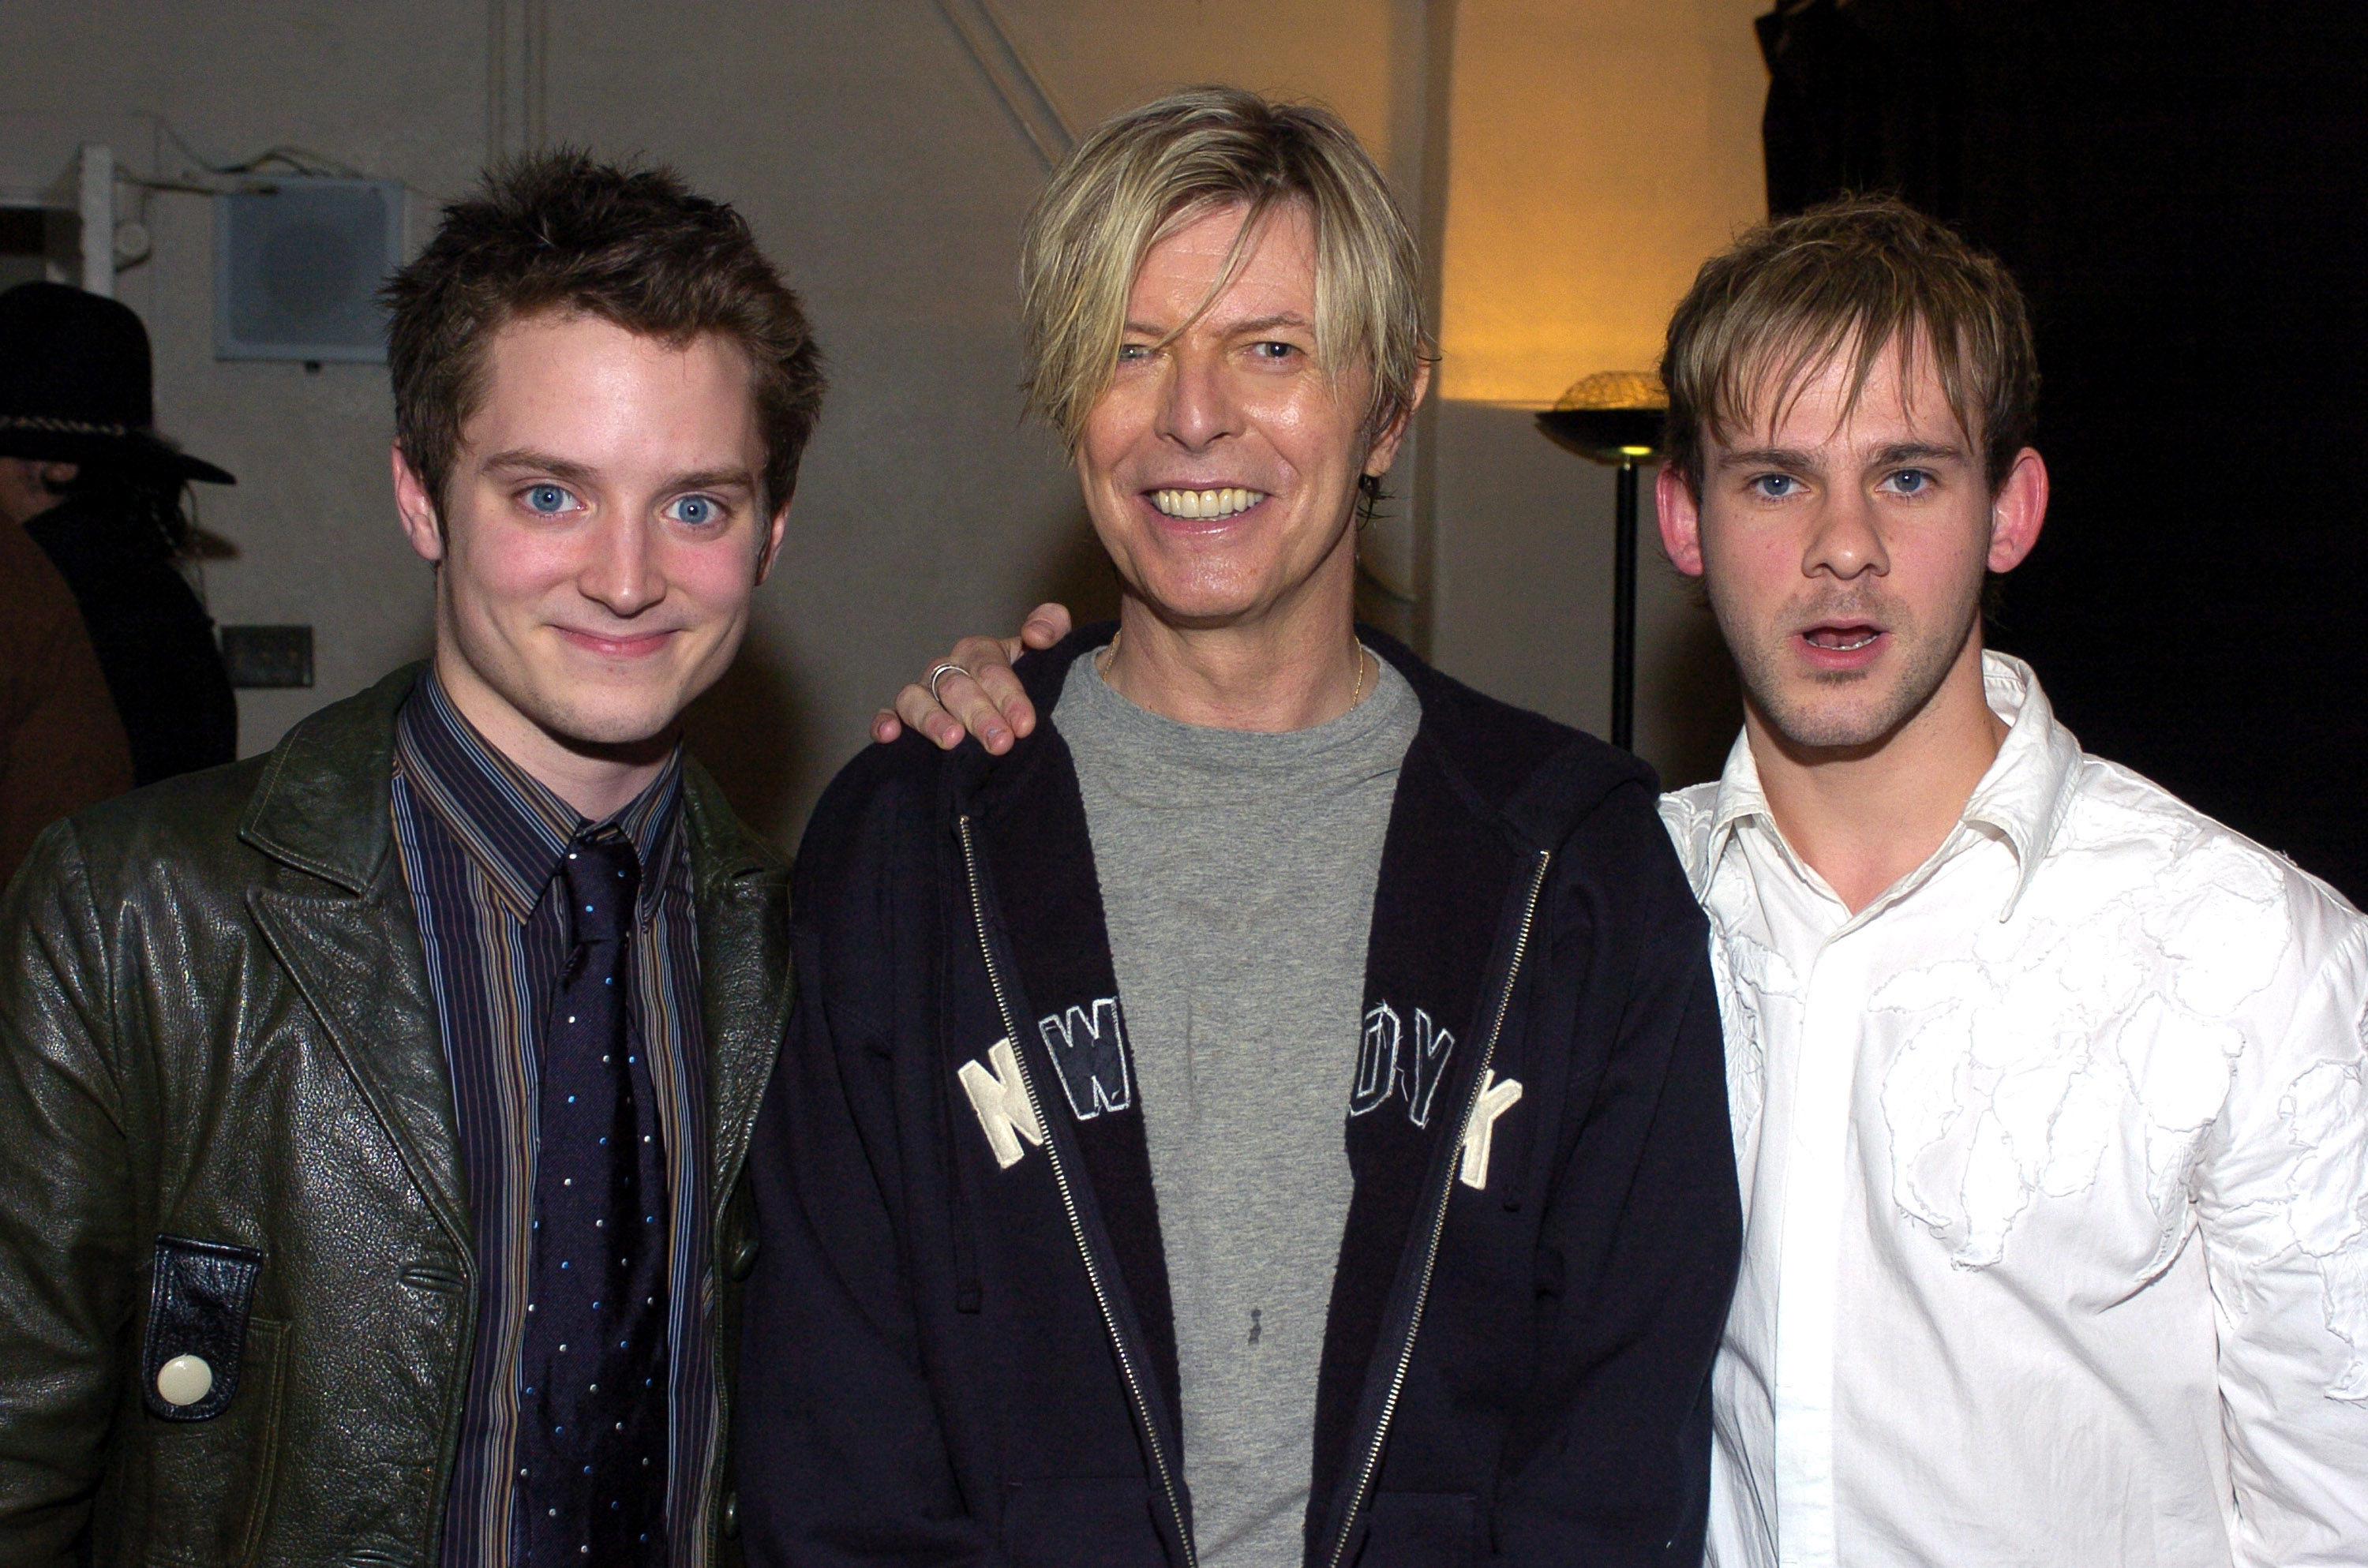 The Lord of the Rings  Trilogy stars Elijah Wood(L) and Dominic Monaghan (R) with David Bowie seen backstage at BOWIE's first concert visit to Los Angeles in nearly seven years.